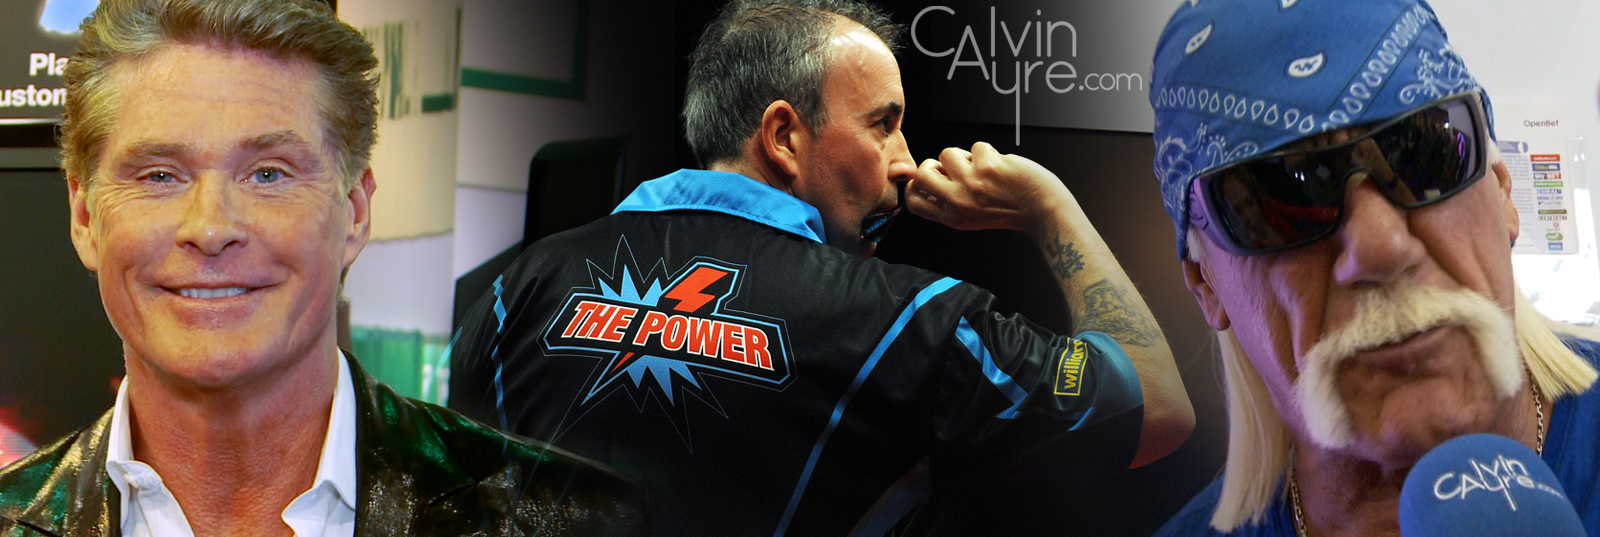 OpenBet slots and celebrity endorsements at 2012 ICE & G2E: Phil Taylor, Hulk Hogan and The Hoff